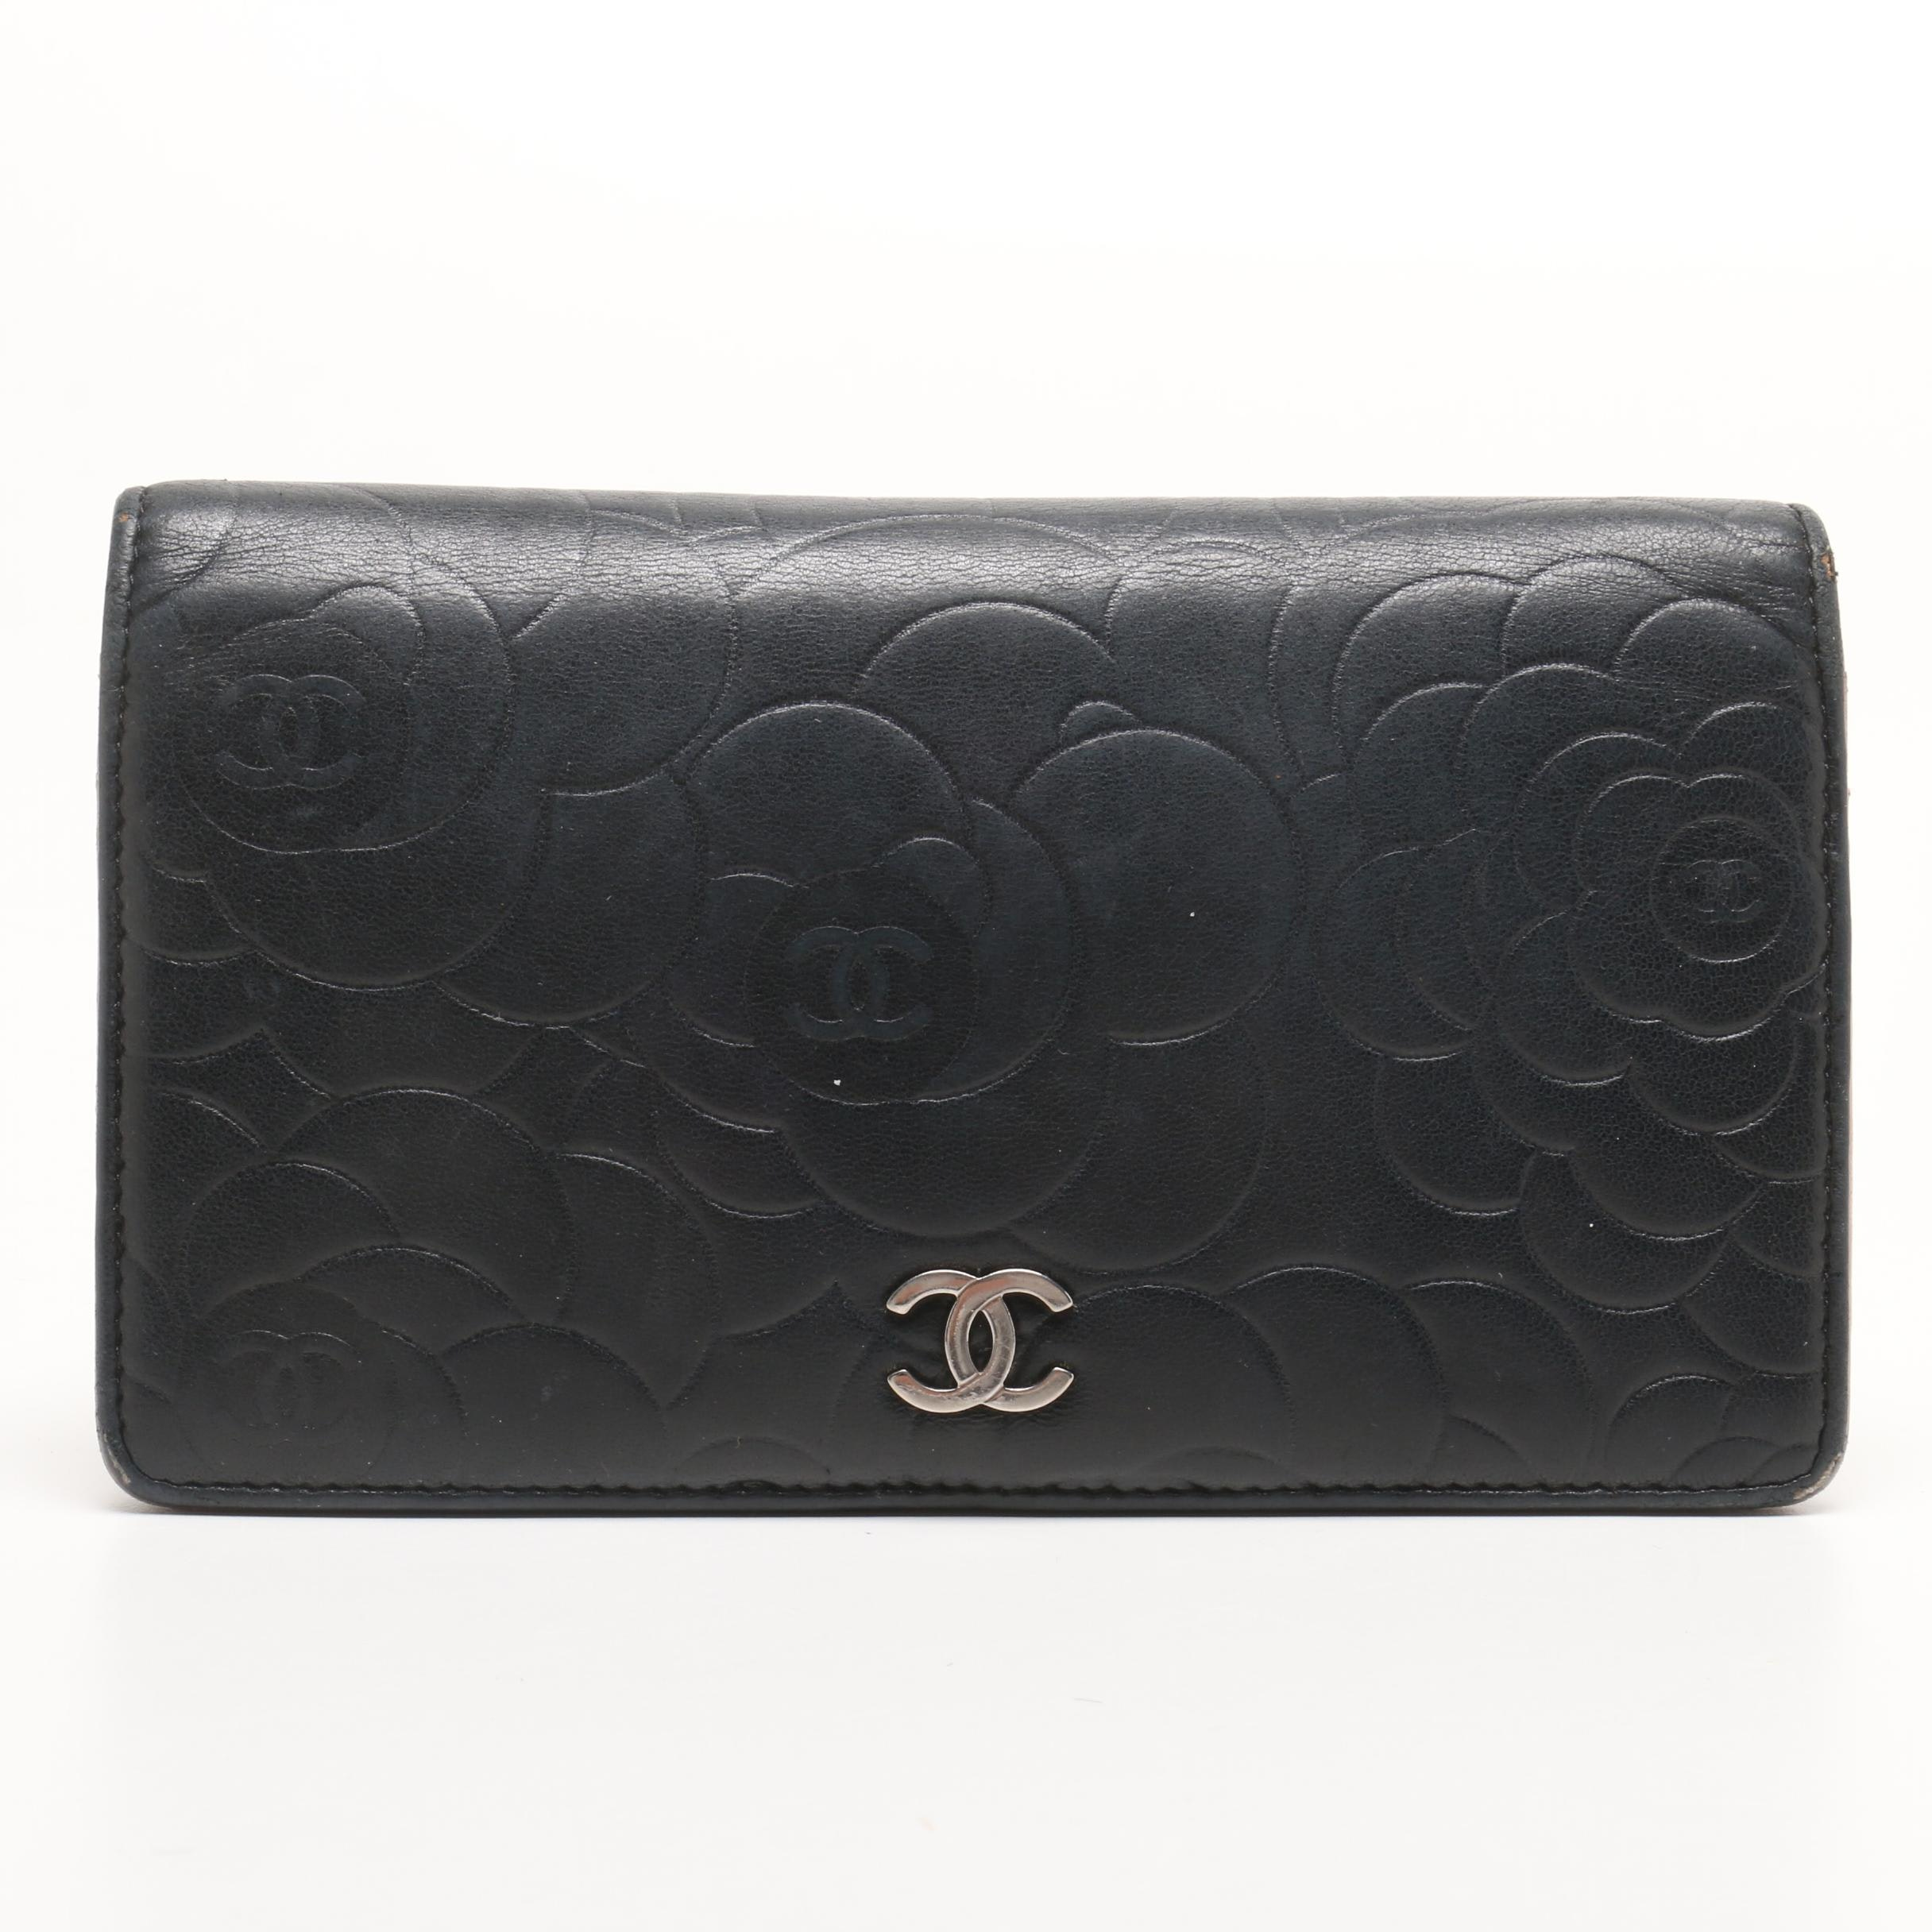 Chanel Black Floral Embossed Lambskin Leather Bifold Wallet with Blush Lining